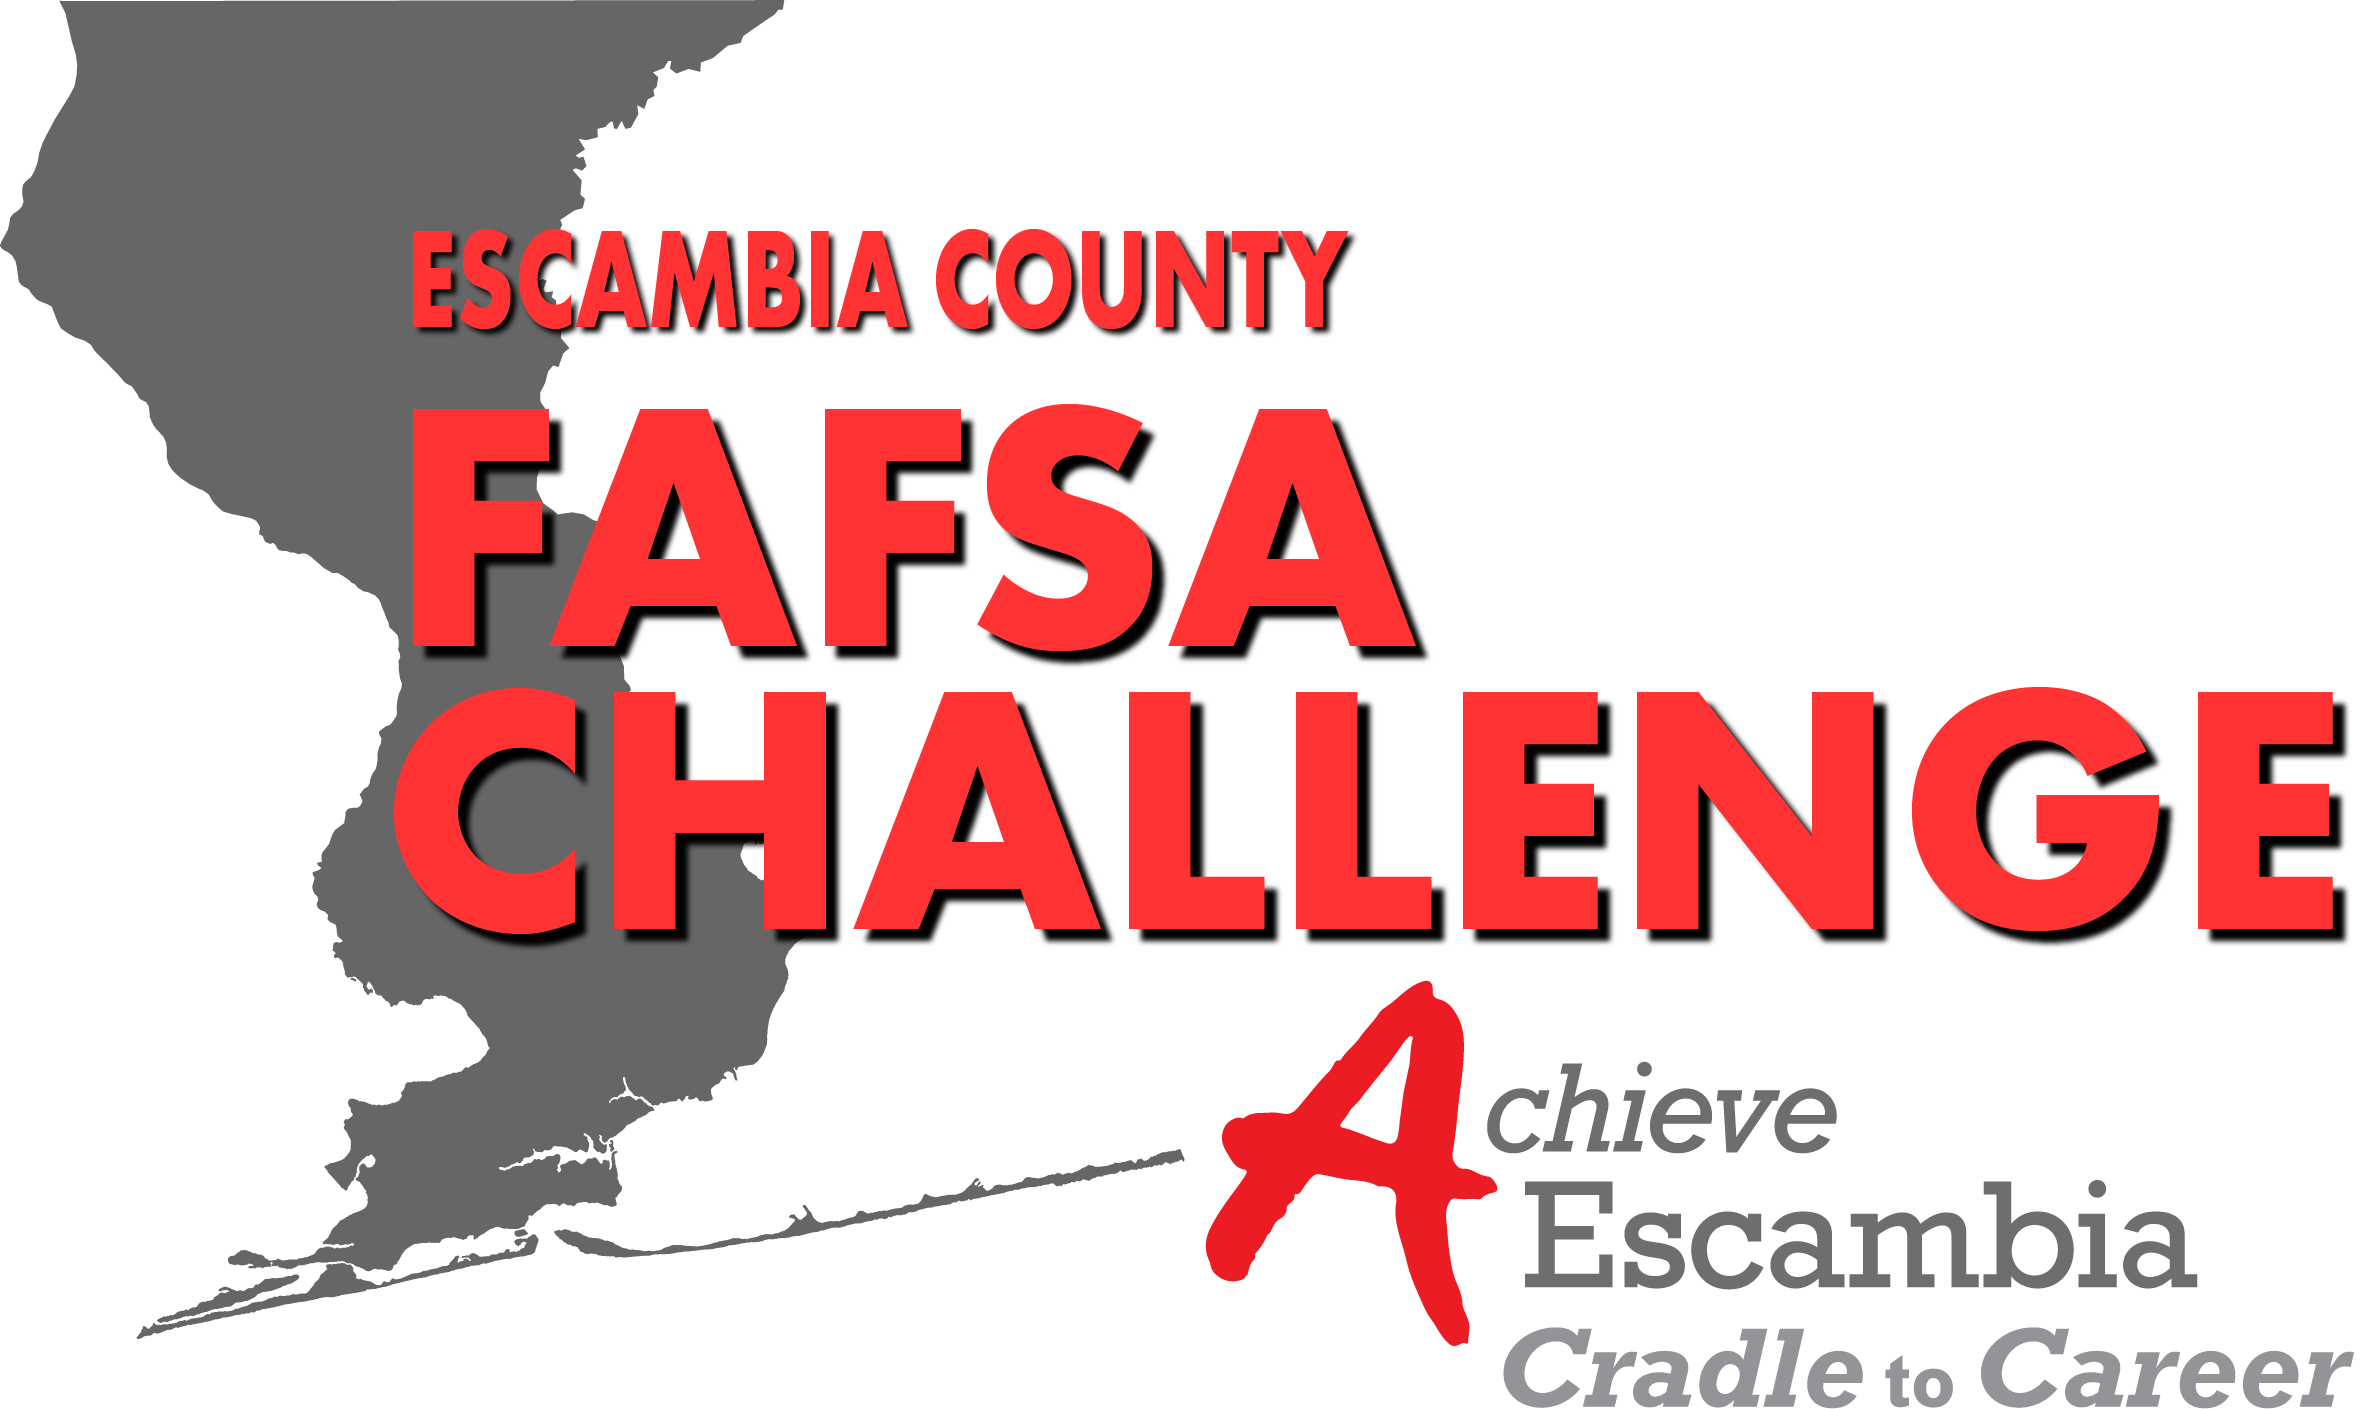 FAFSA_Challenge_Achieve_Escambia_Logo_Transparent.png